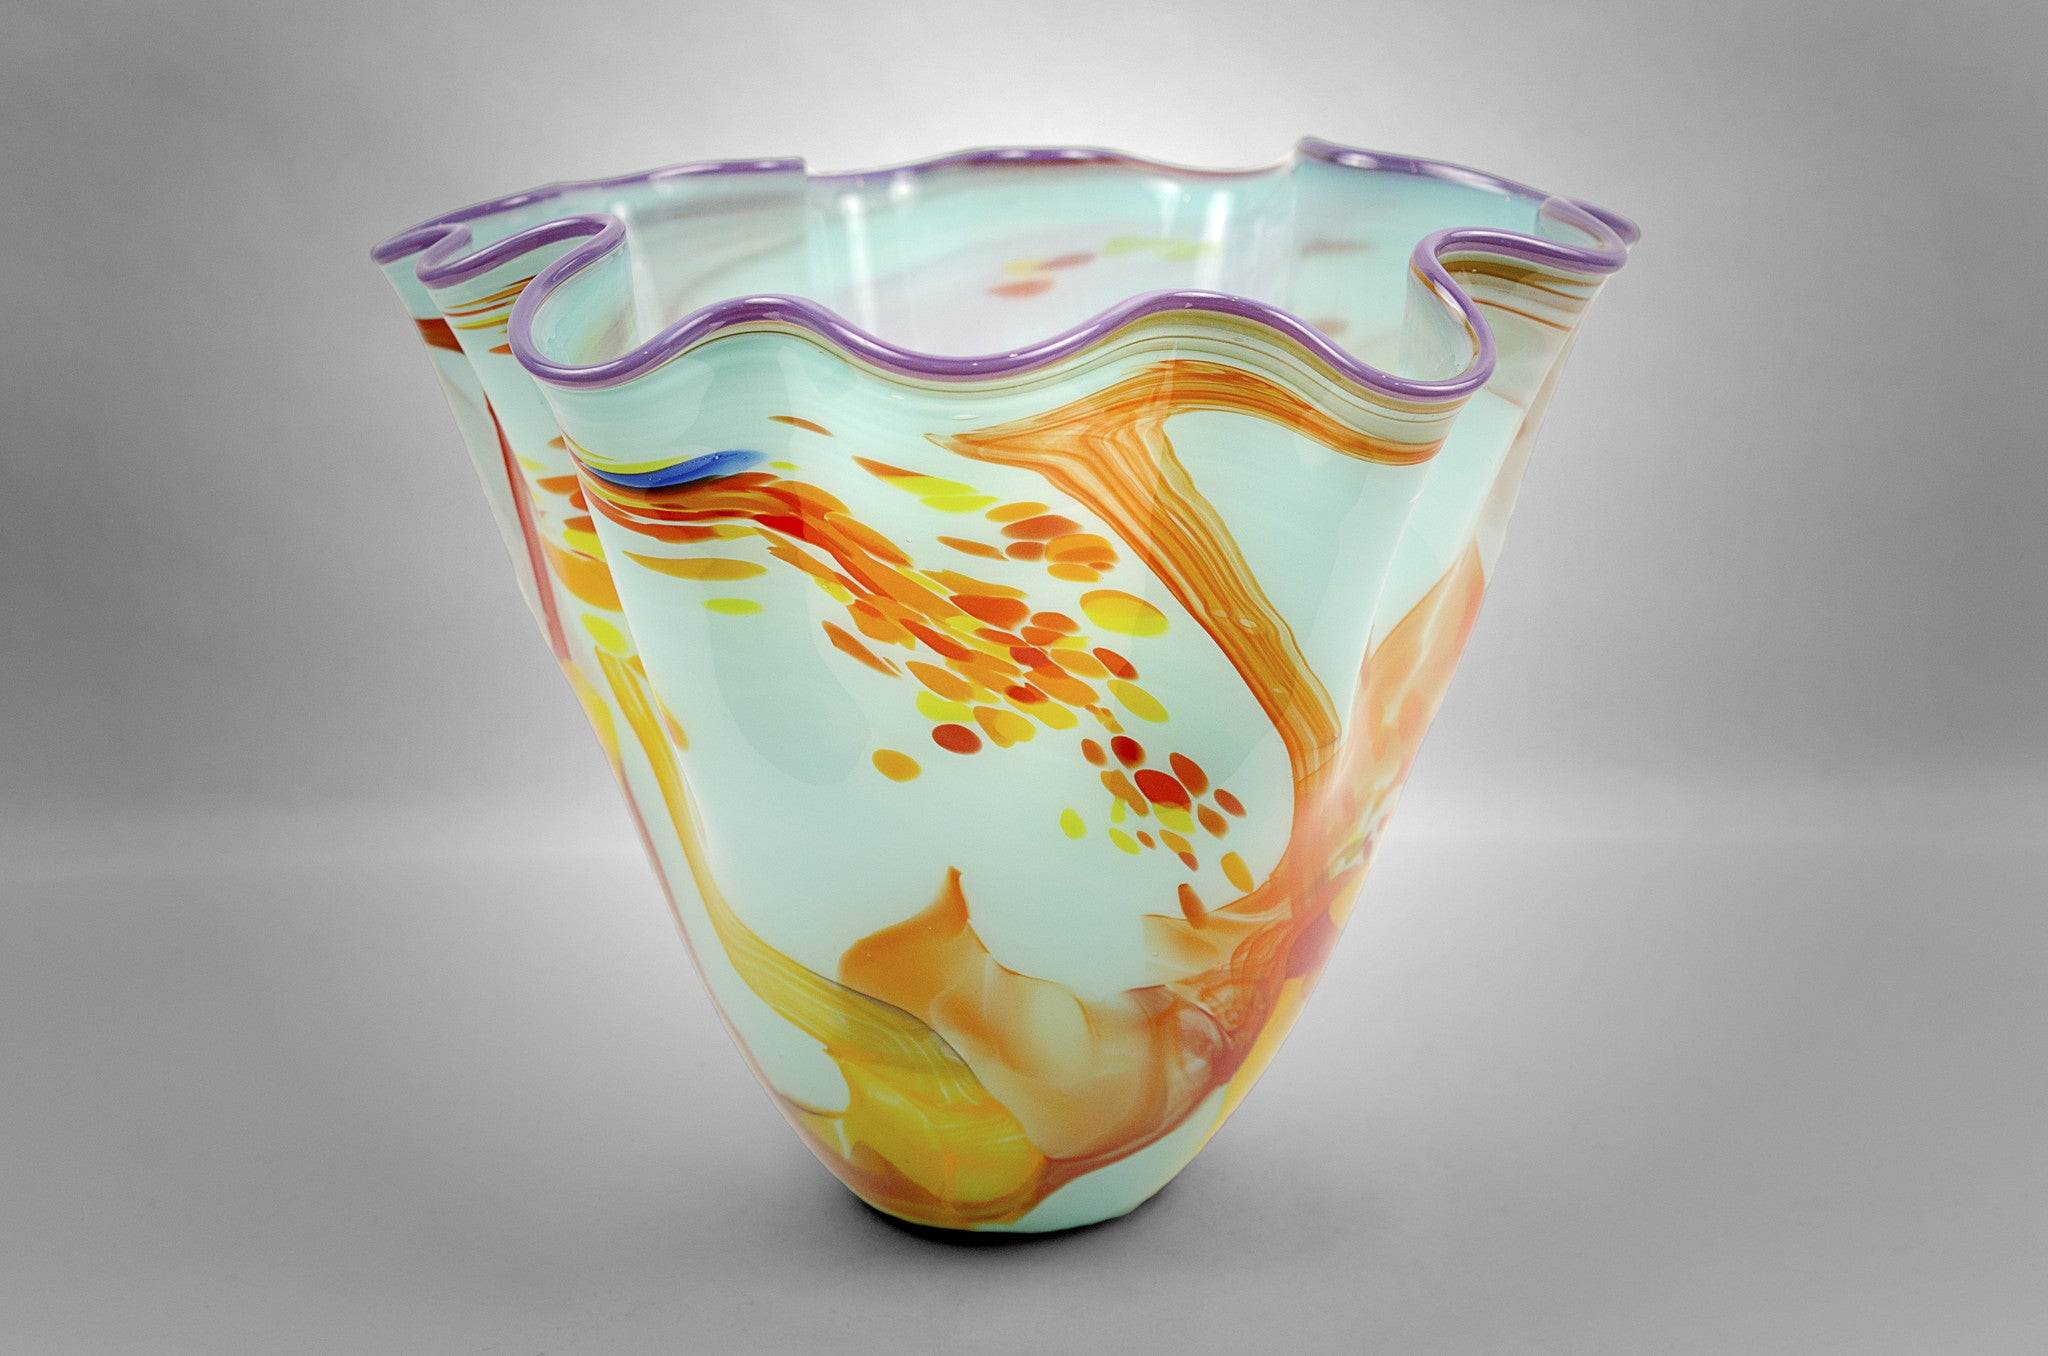 Fluted bowl / vase with broken shards of recycled glass and light blue base color and purple rim